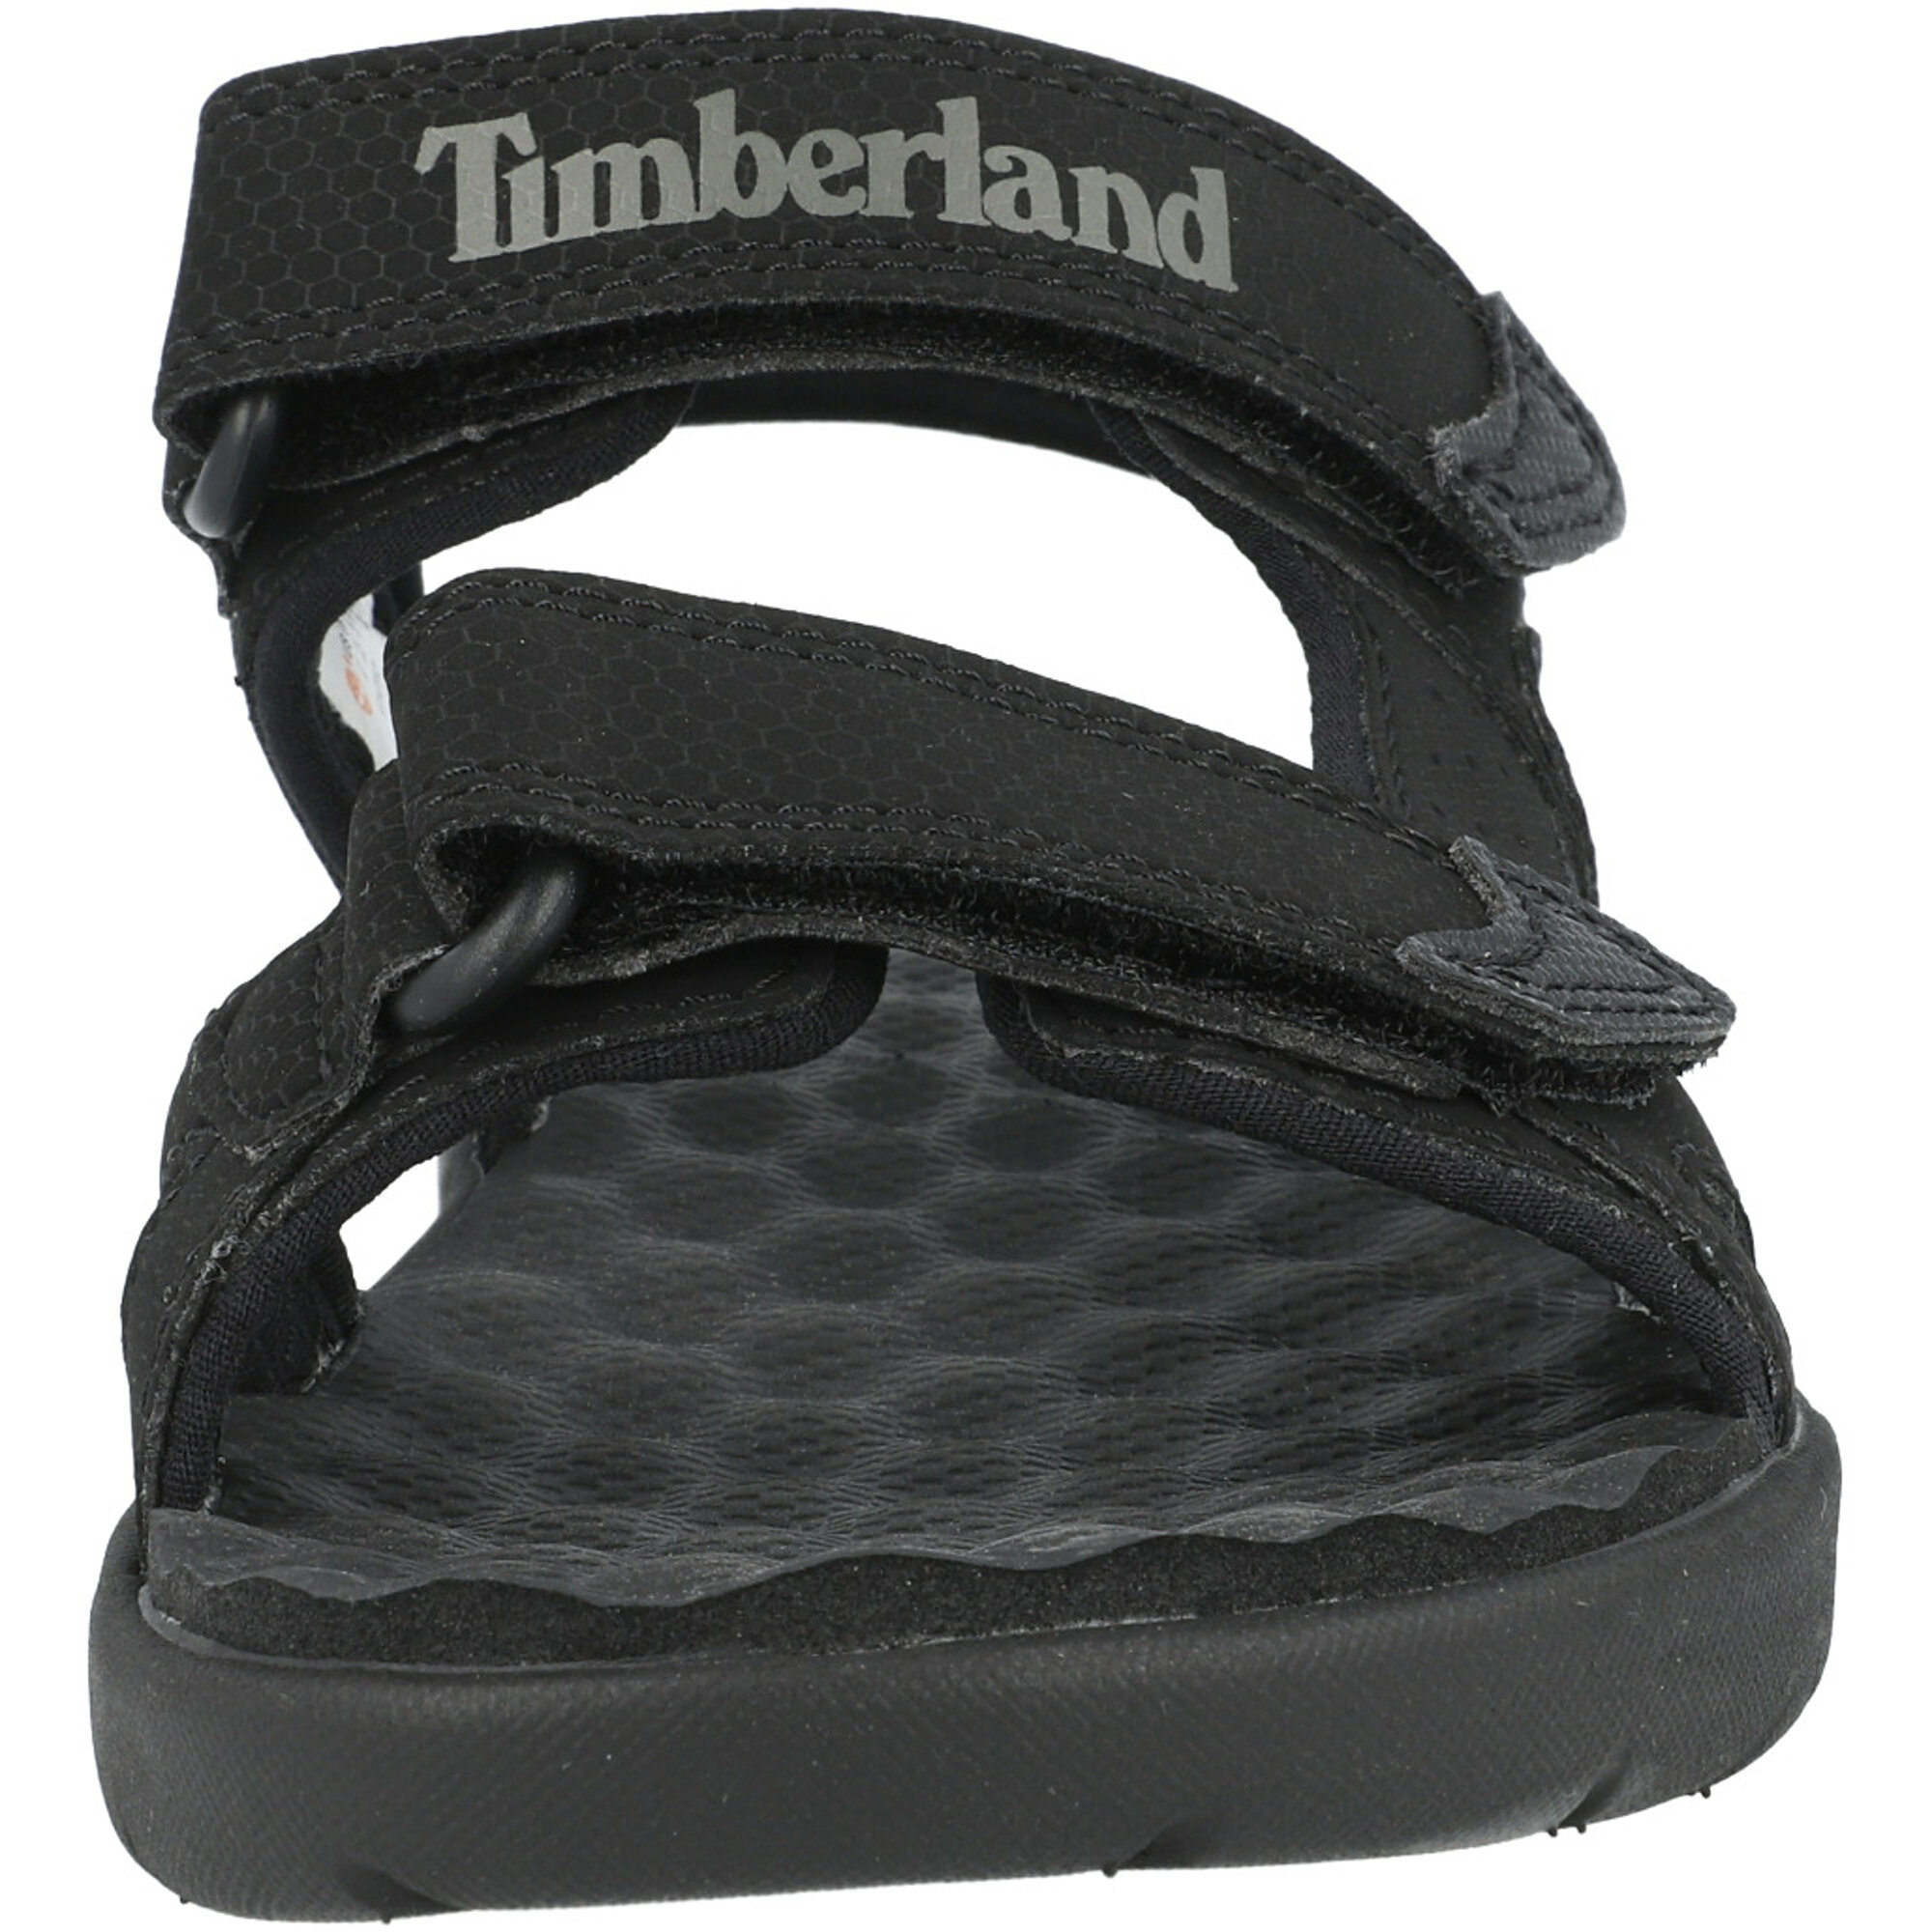 Timberland Perkins Row 2 Strap J Black Synthetic